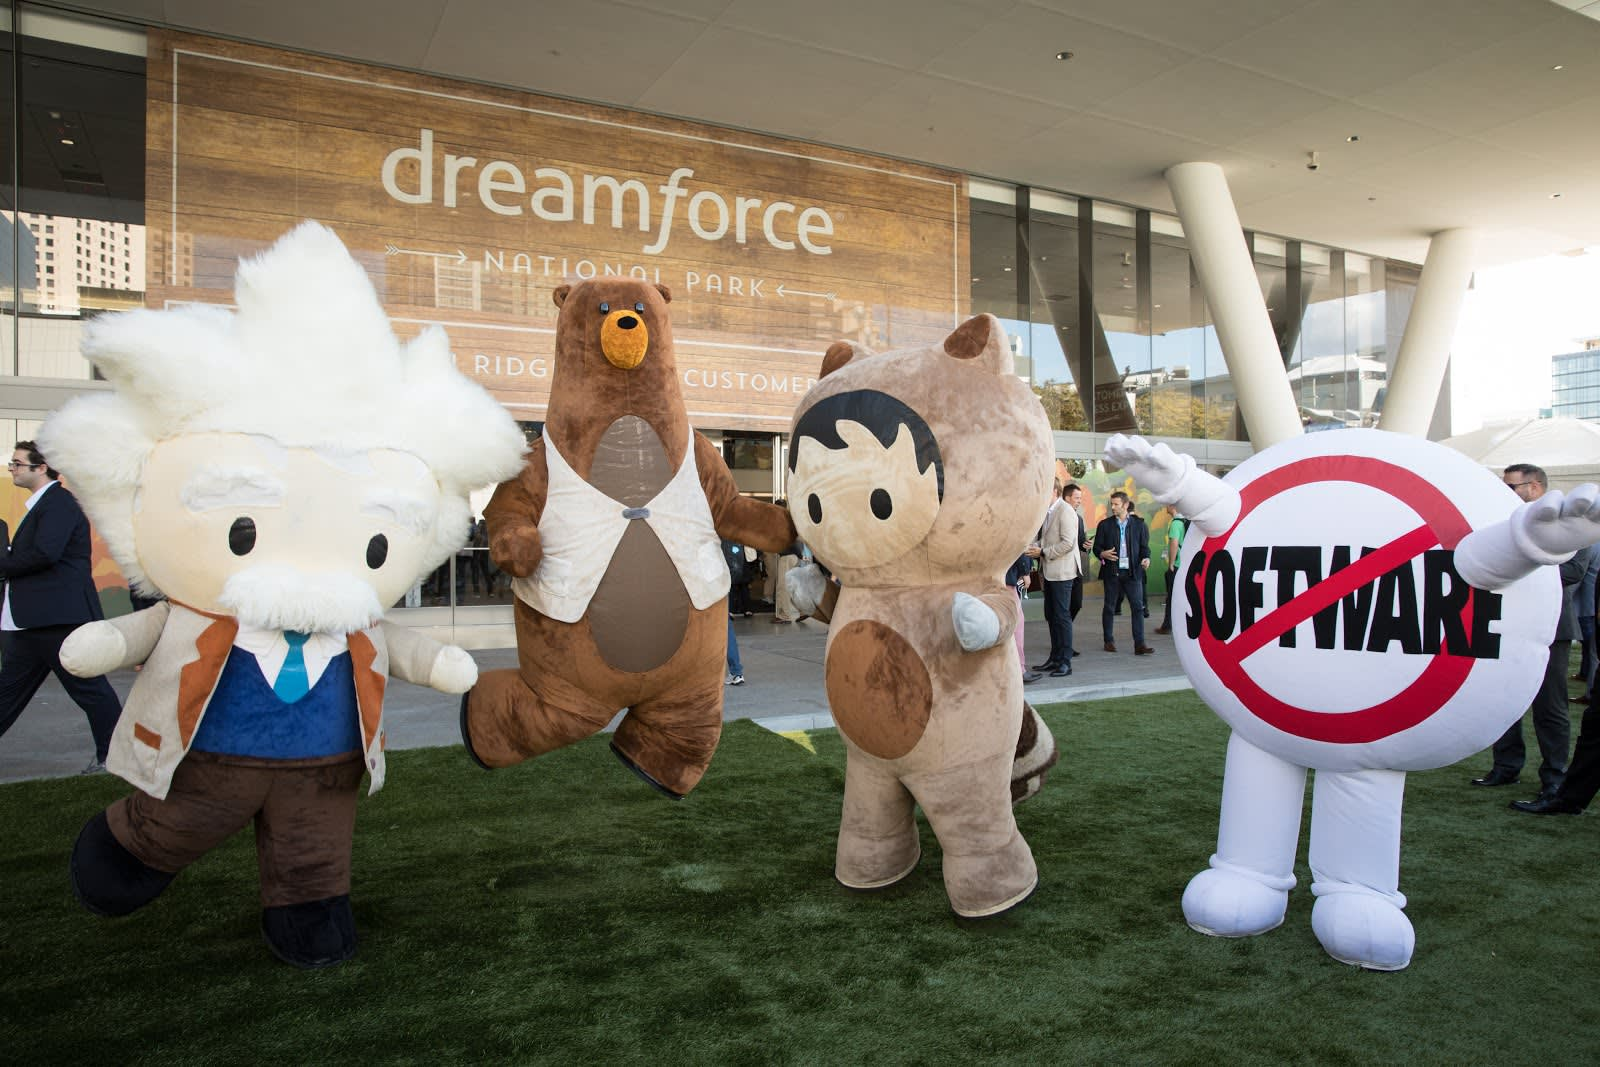 Einstein, Codey, Astro, and SaaSy - Salesforce Characters jumping for joy.